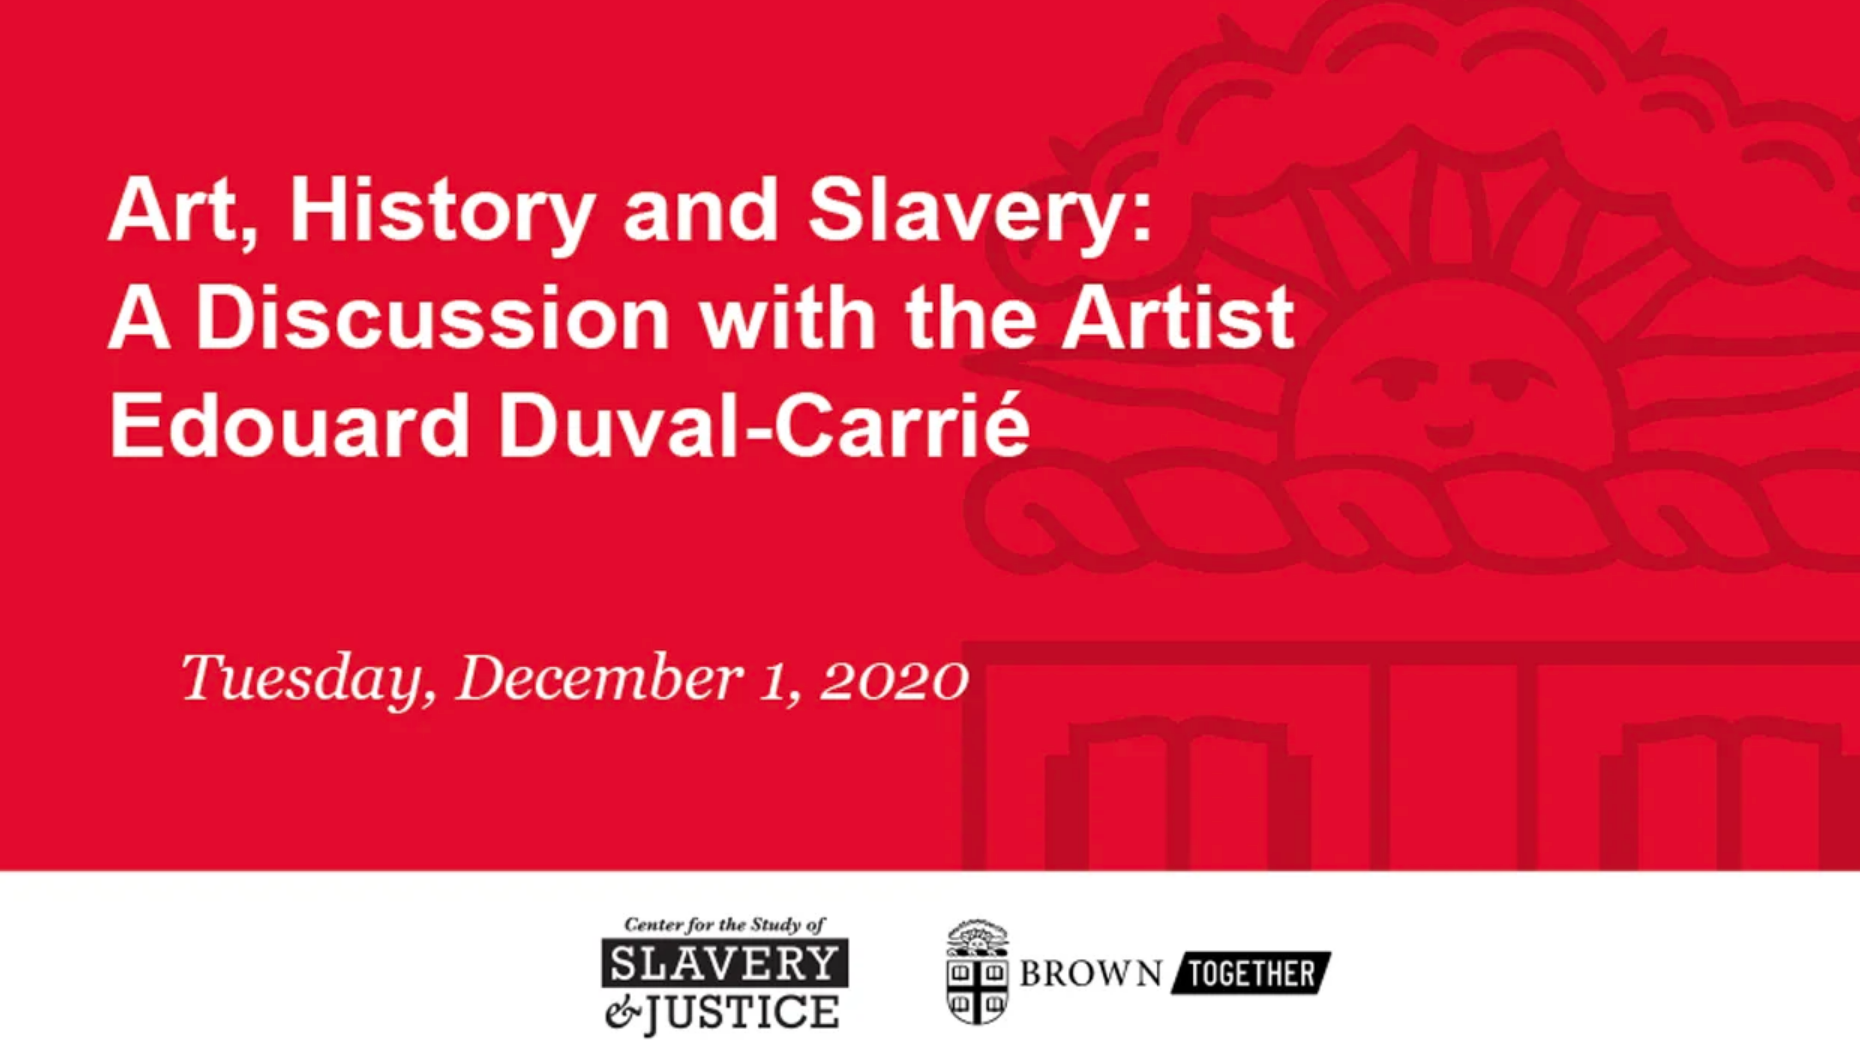 Art History and Slavery: A Discussion with the Artist Edouard Duval-Carrié